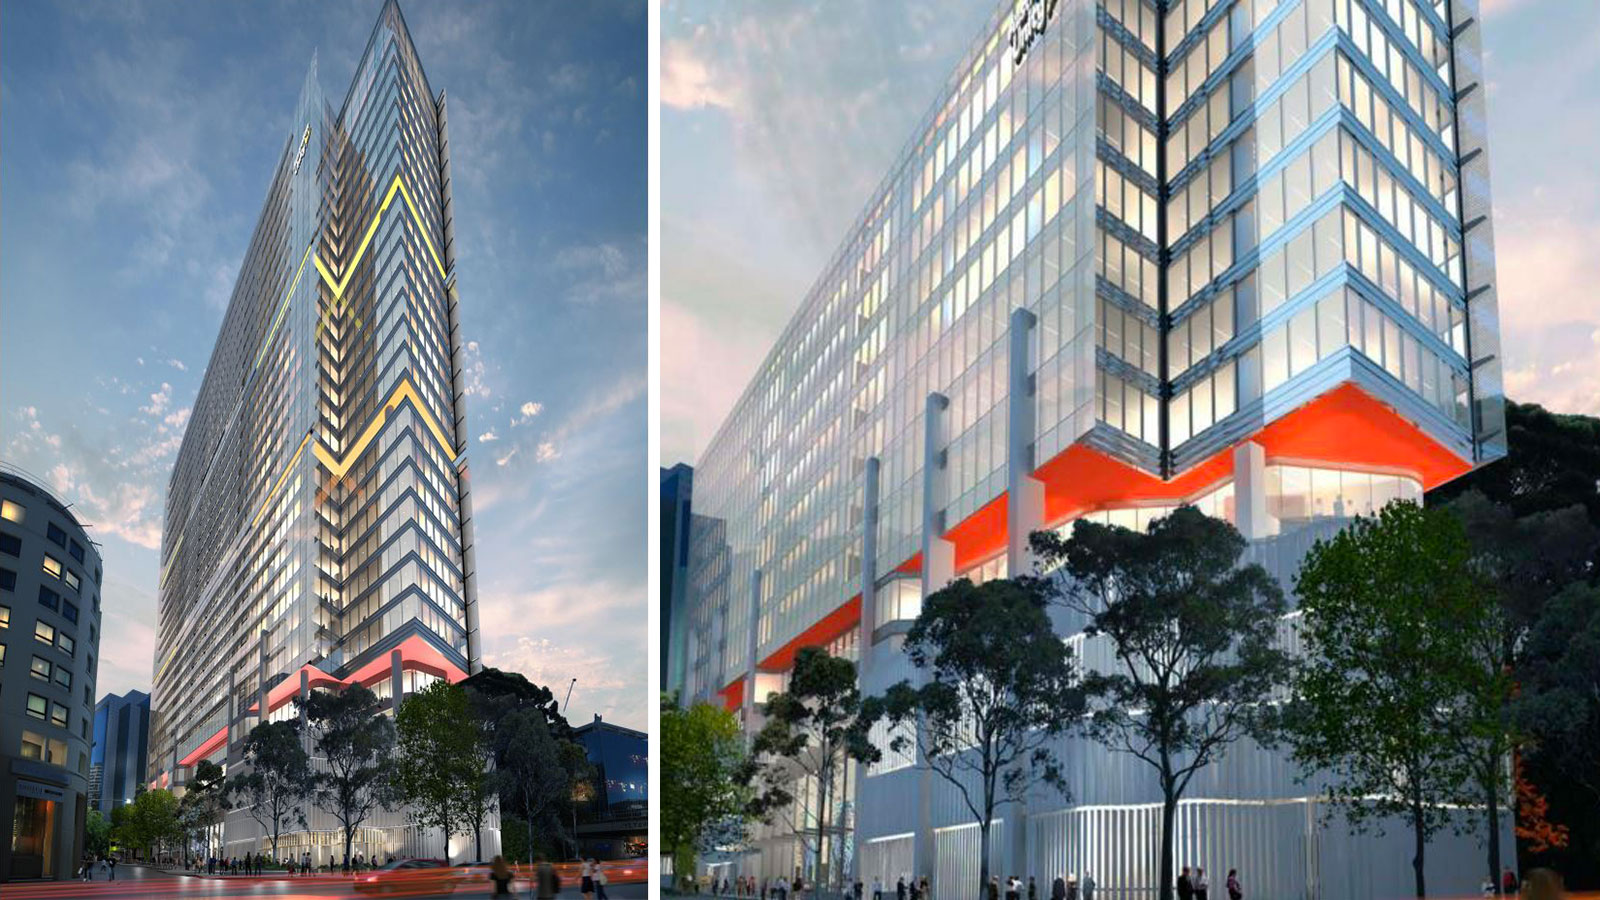 ▲ Comparison of the new Australian Unity plans for Valentine Avenue which features a slim 30-storey building versus the original plans which are a third of the size and features the same podium and red block colour near the fifth floor.